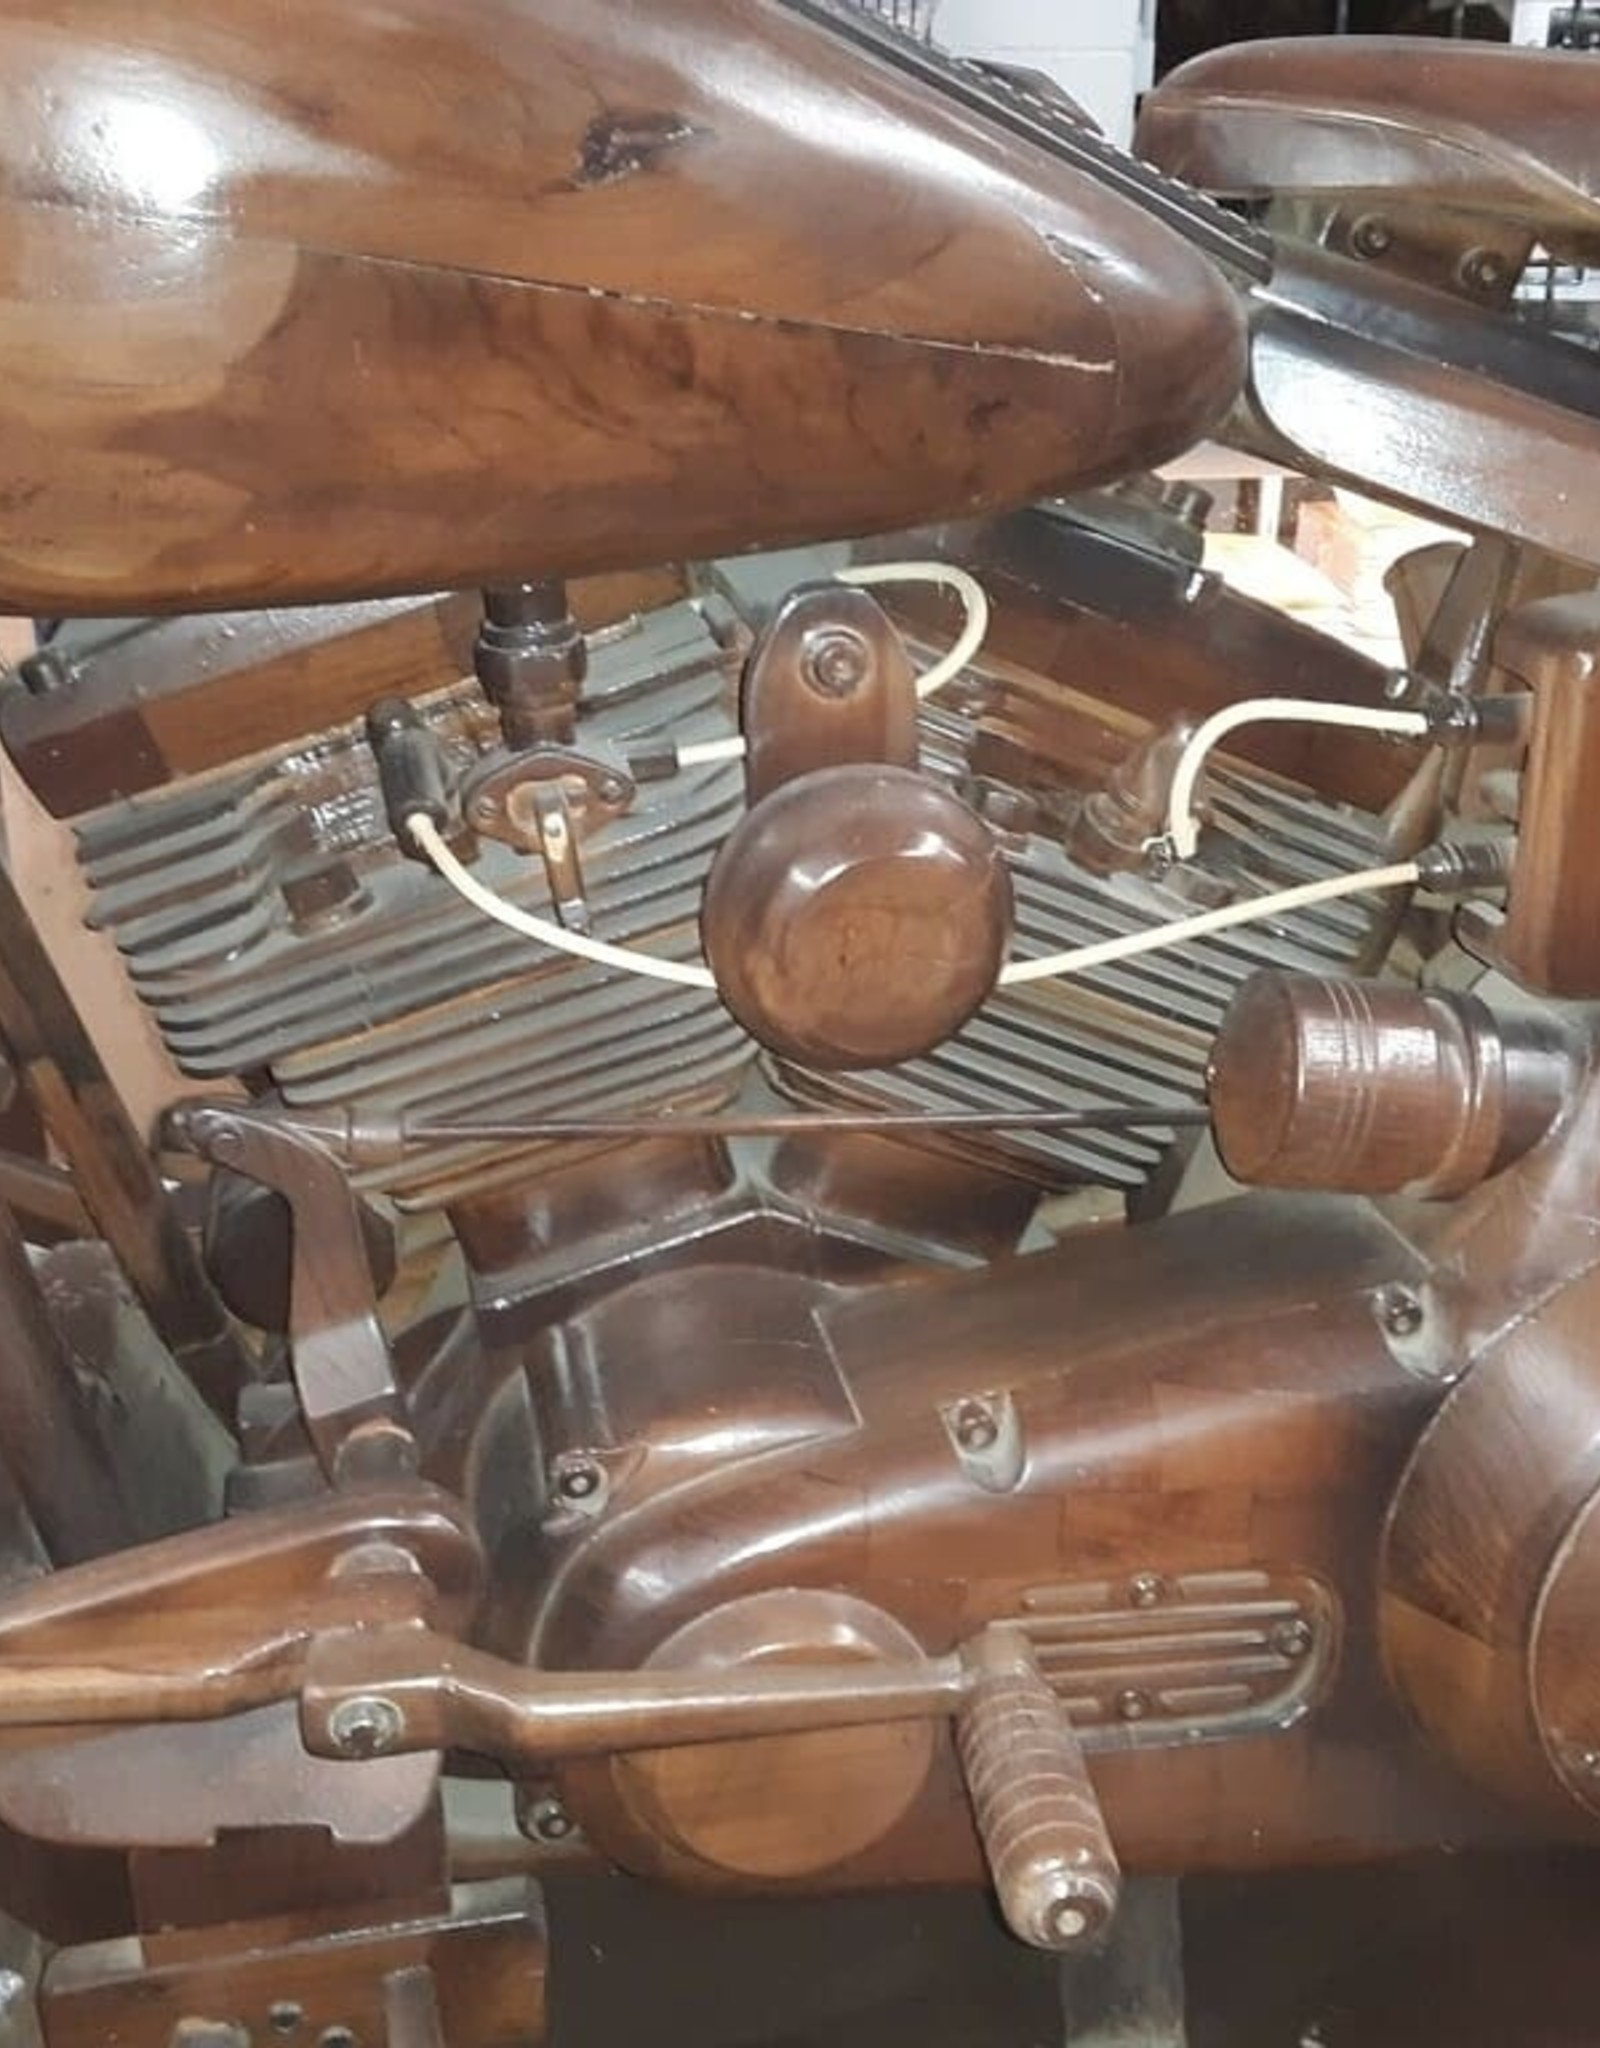 WOOD MOTORCYCLE - TEAK MAHOGANY HAND CRAFTED INDONESIA